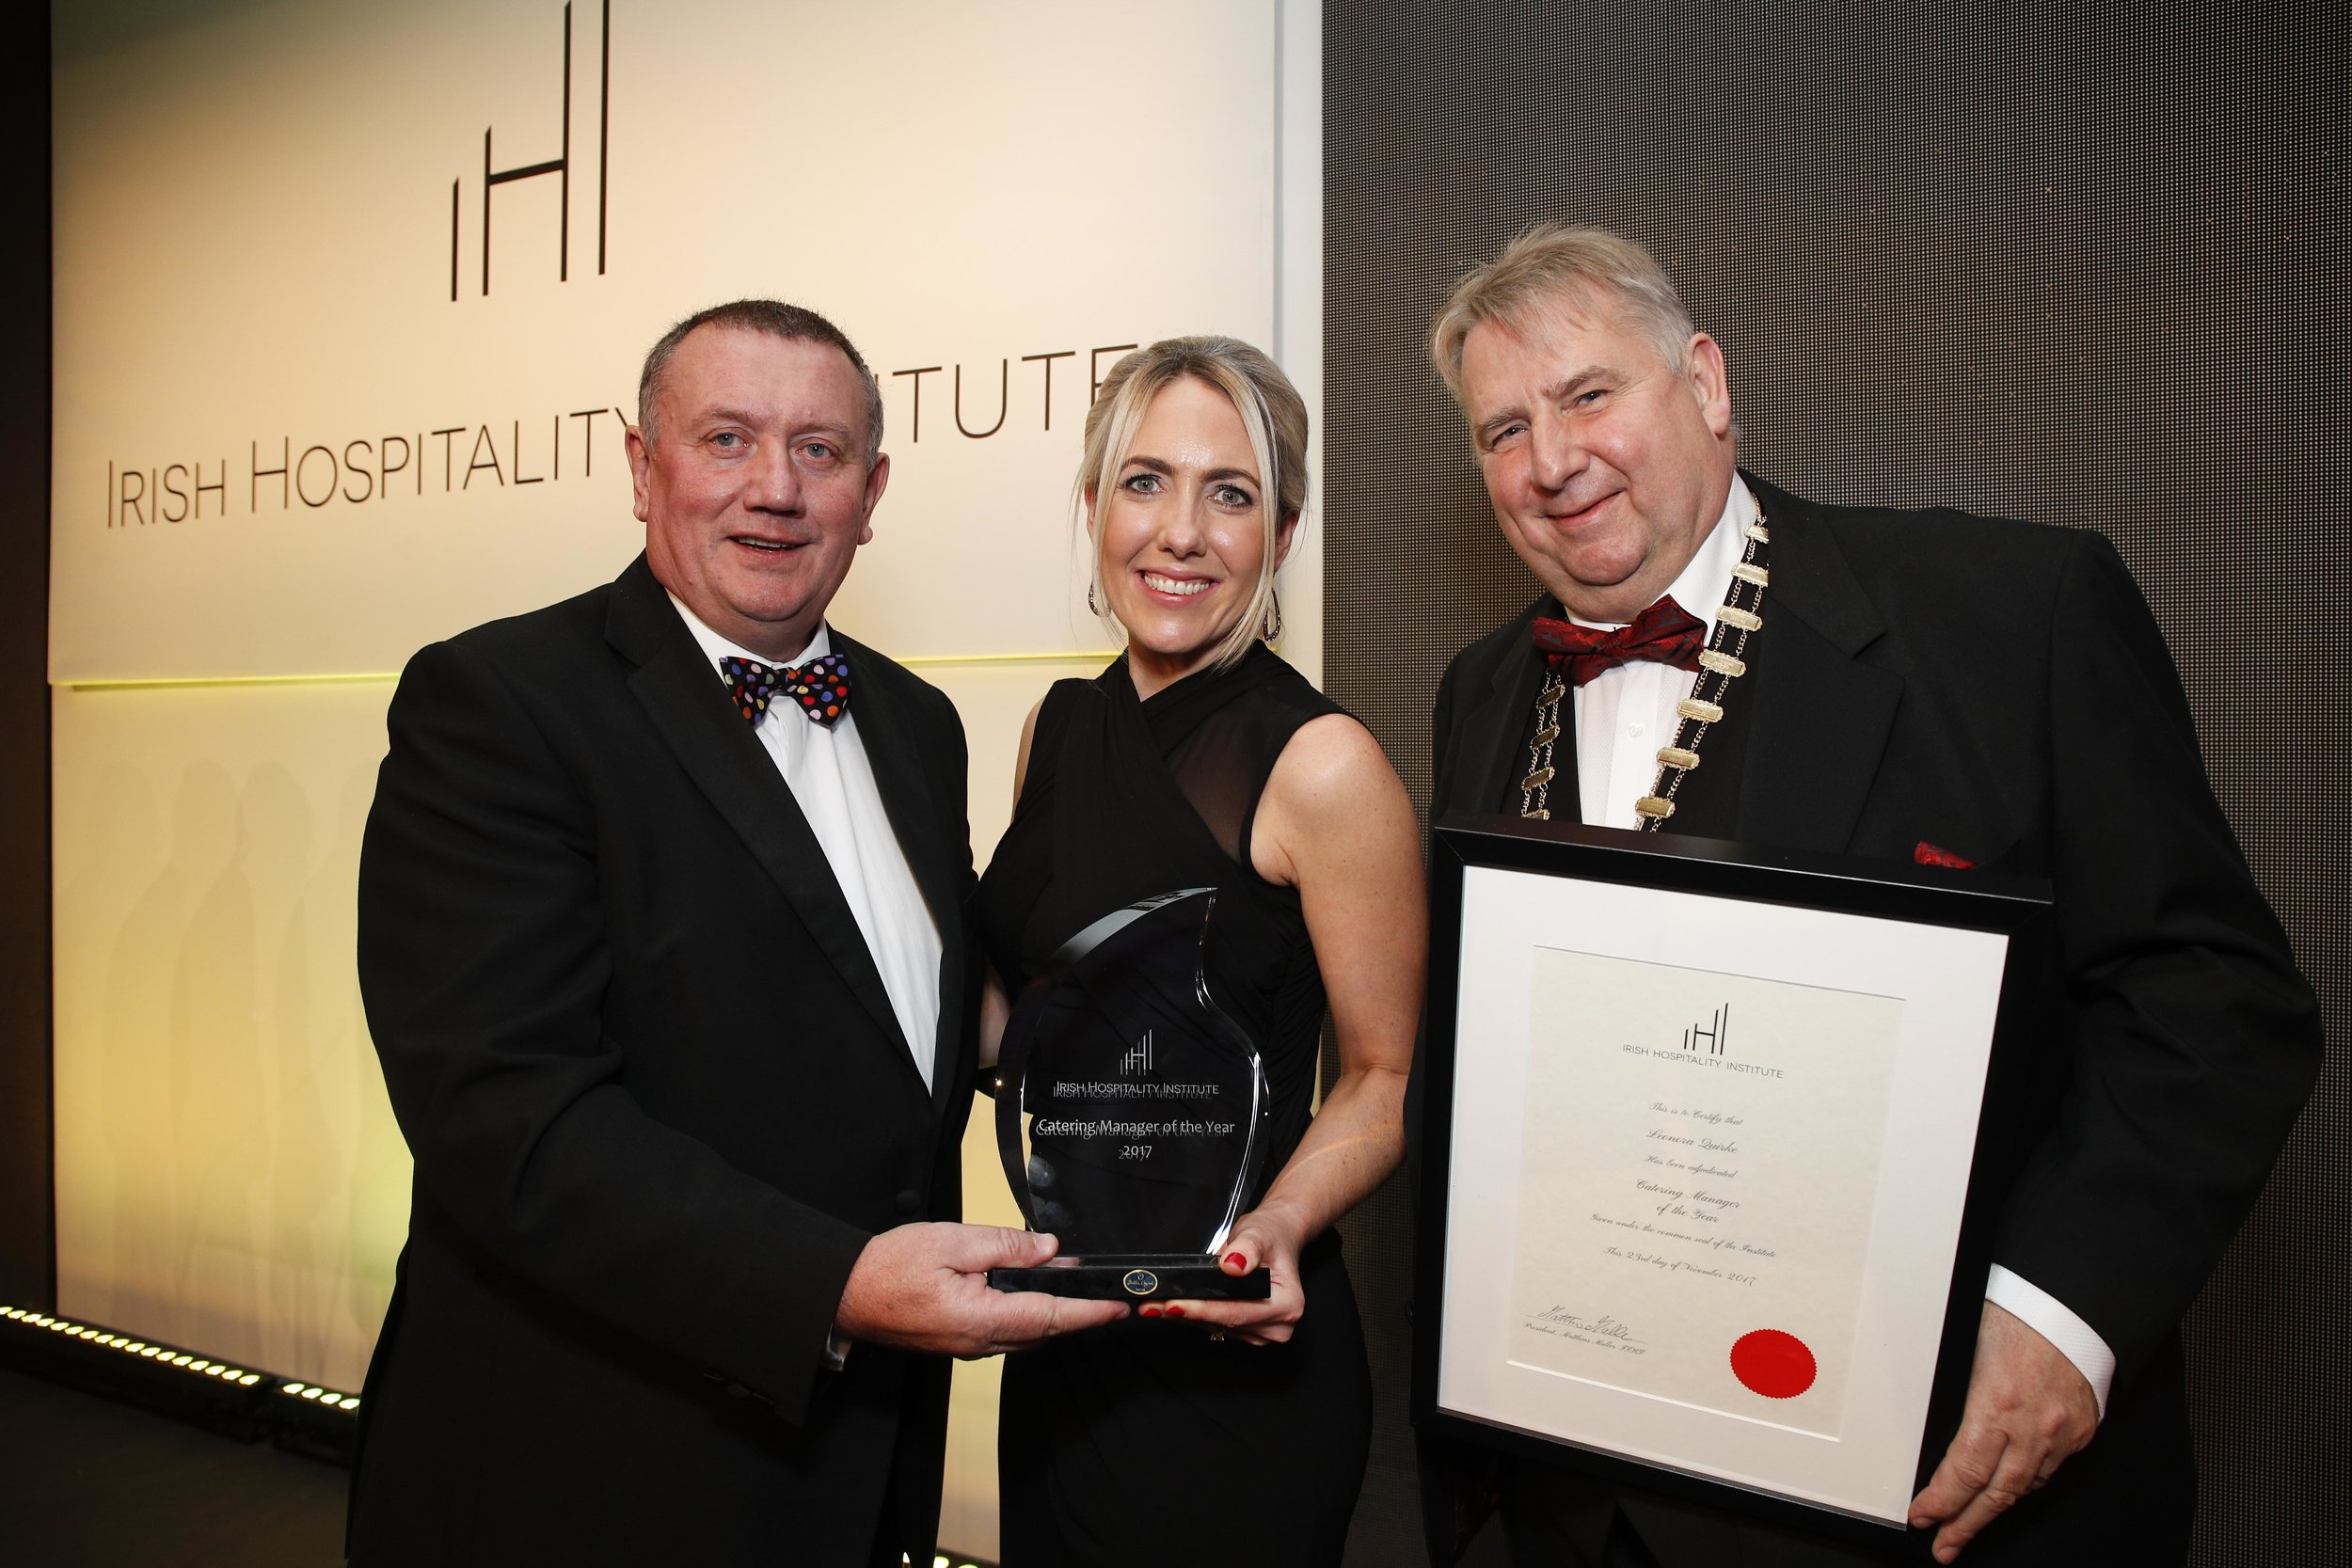 Leonora Quirke, Operations Director at Masterchefs Hospitality named as Catering Manager of the Year